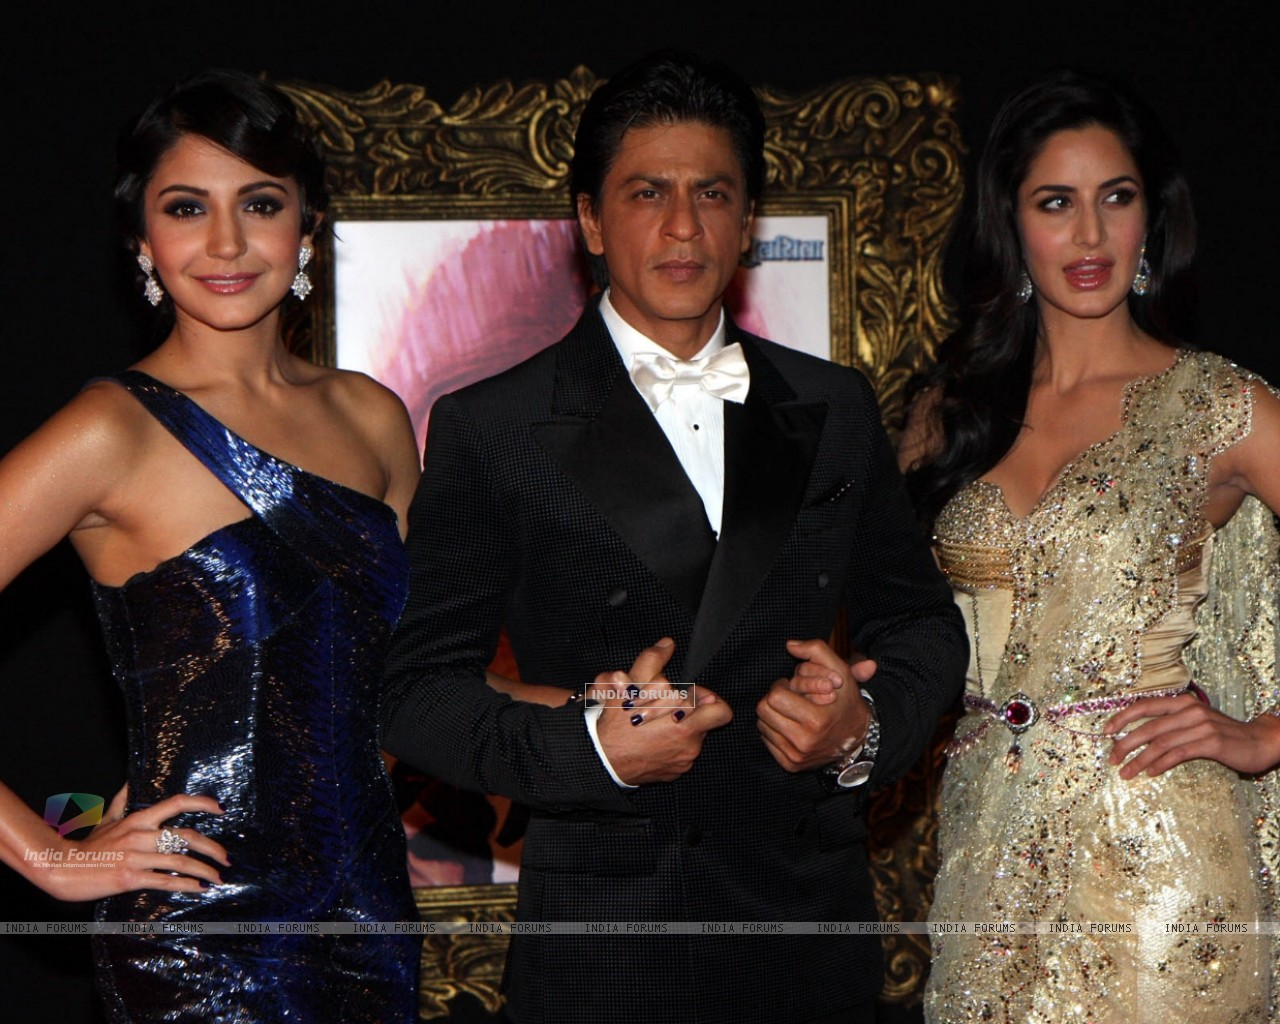 Anushka Sharma, Shahrukh Khan and Katrina Kaif at Red Carpet for premier of film Jab Tak Hai Jaan (239721) size:1280x1024